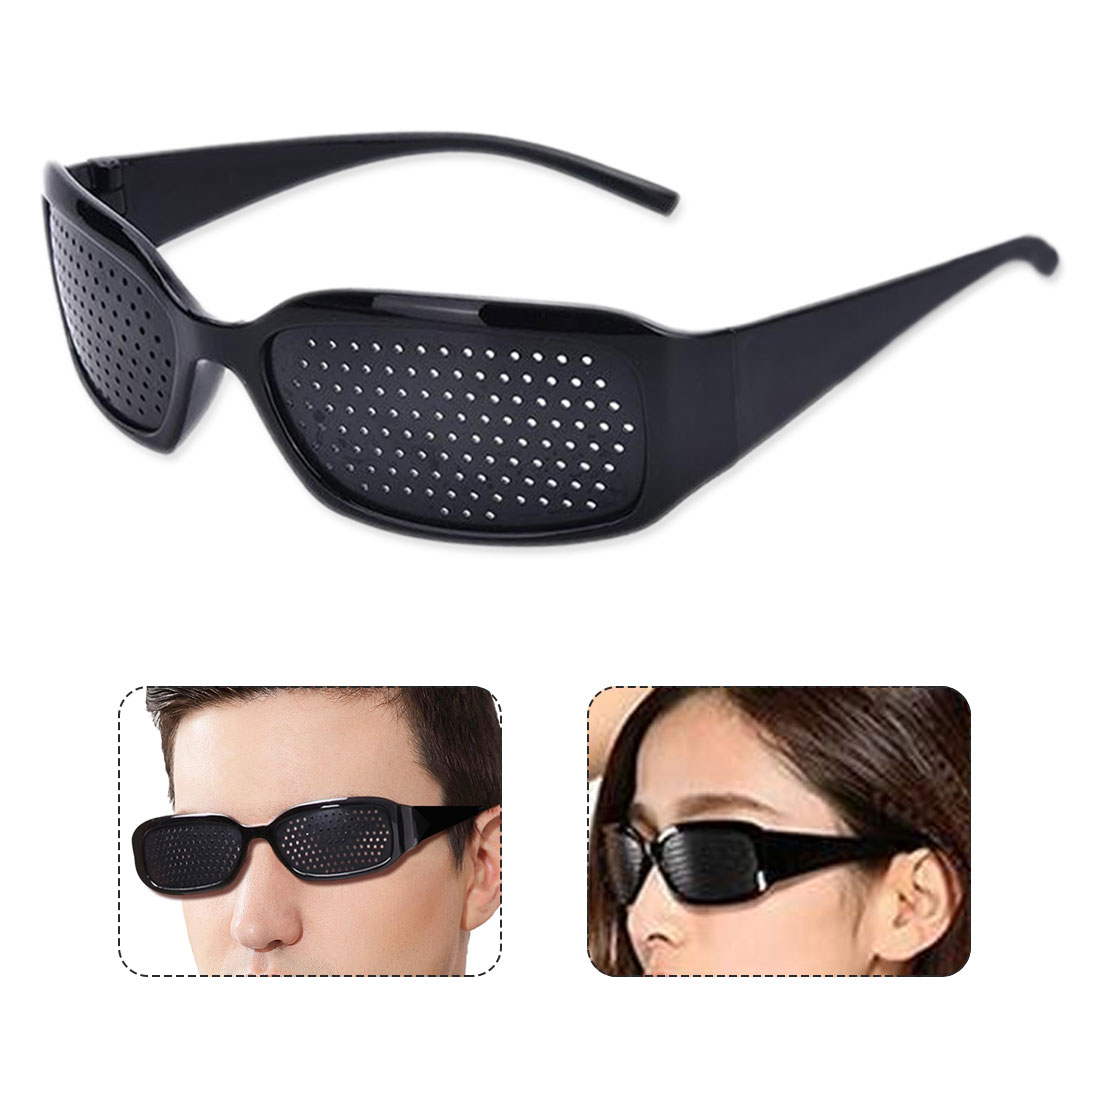 Hot Black Unisex Vision Care Pin hole Eyeglasses pinhole Glasses Eye Exercise Eyesight Improve Plastic Natural Healing Cheap